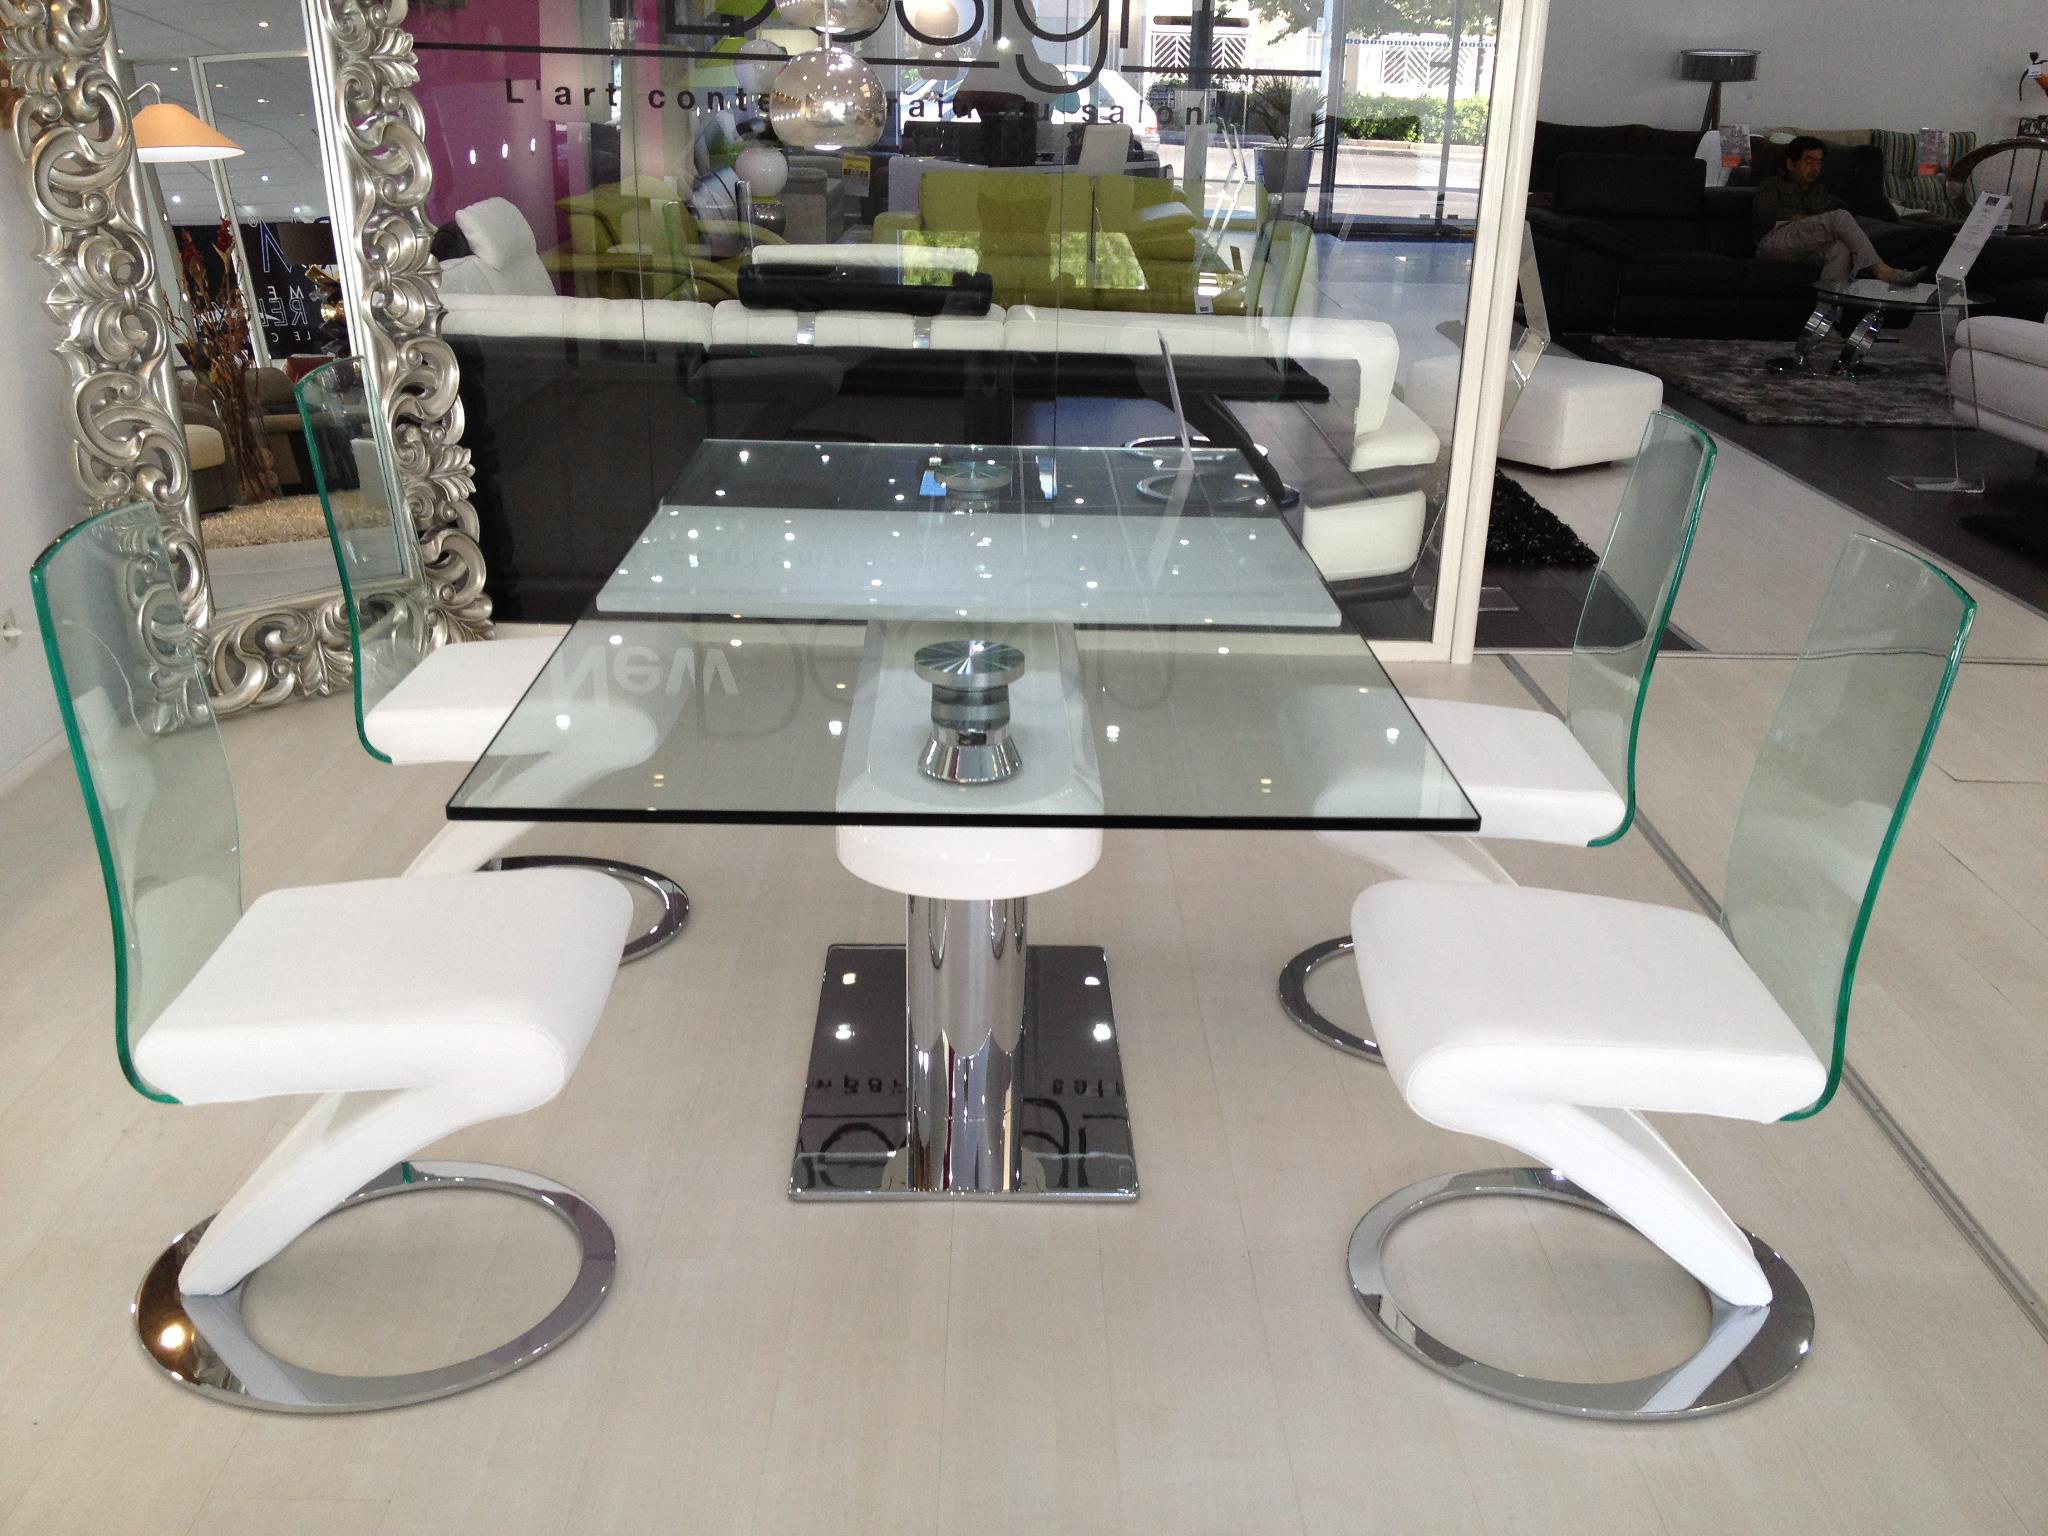 Table salle manger design en verre avec rallonges for Table sejour design